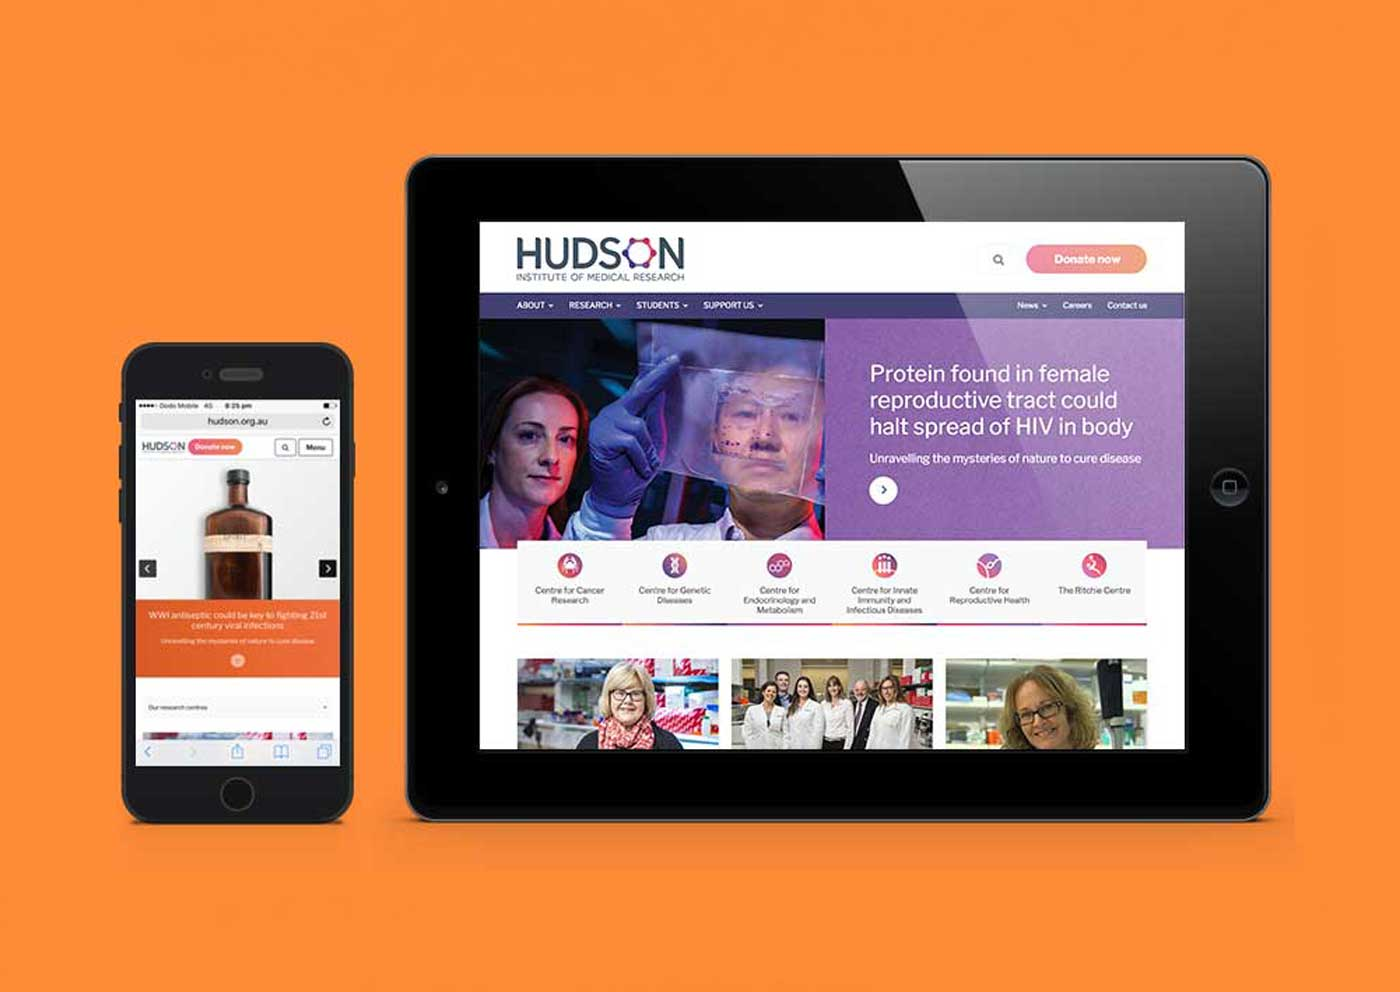 Hudson website on mobile and ipad